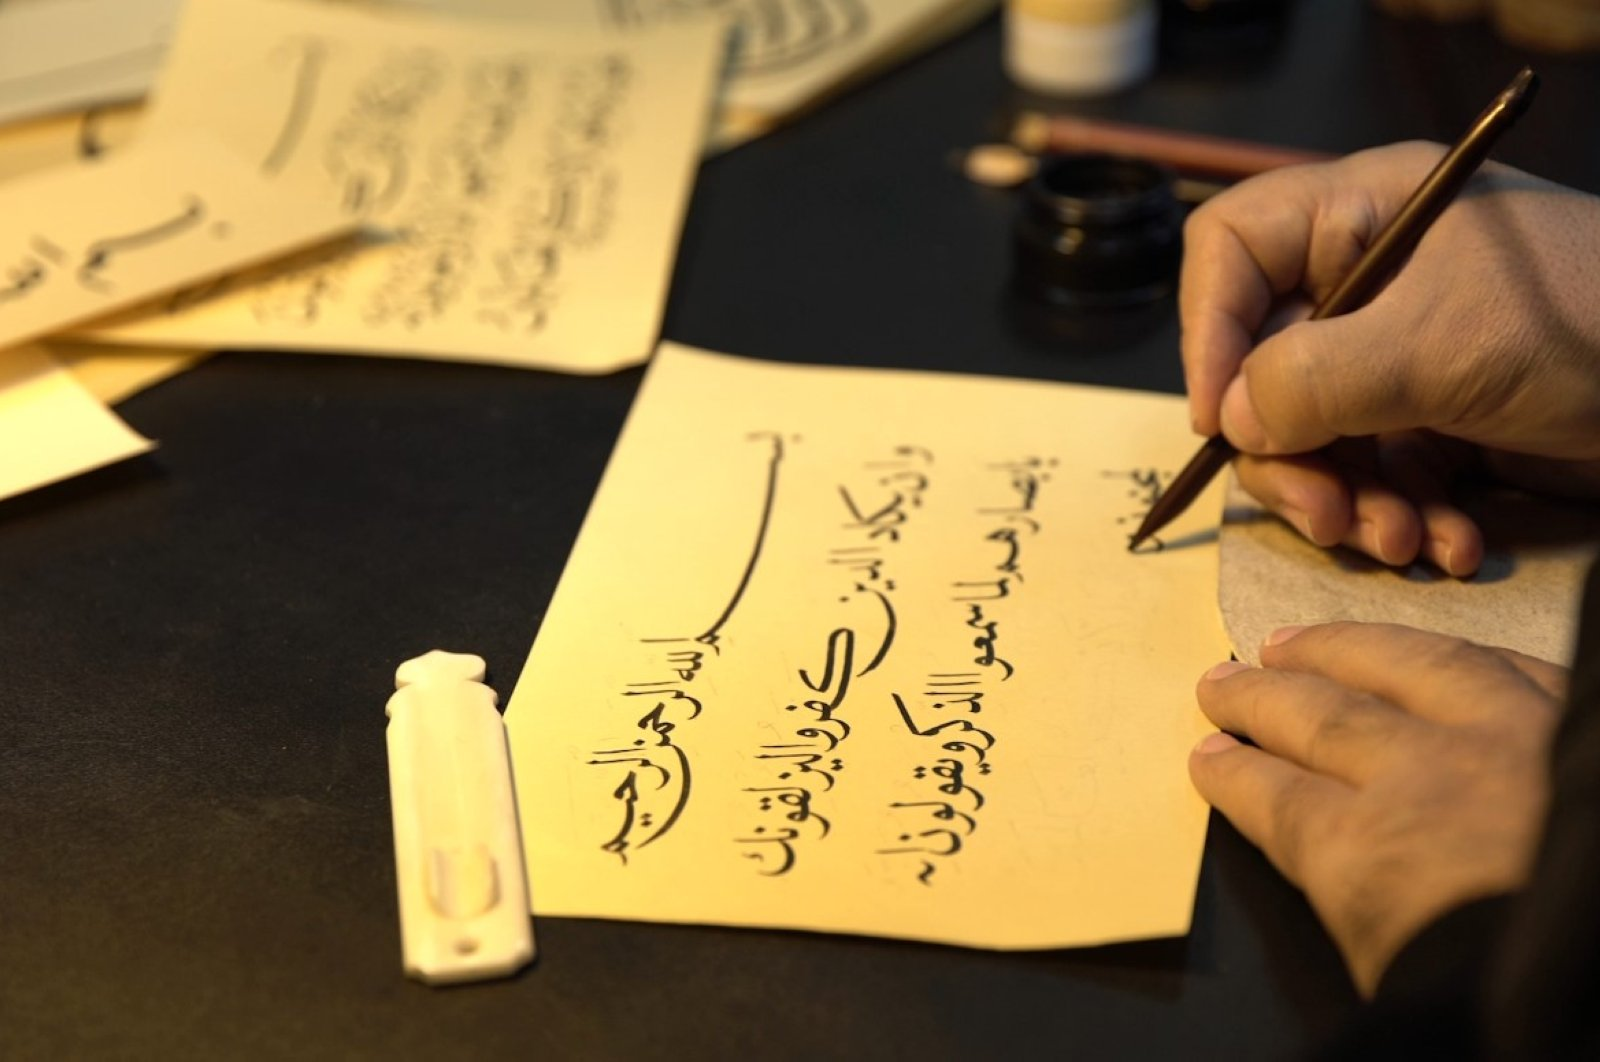 Islamic calligraphy also means attention, moderation, respect, spirituality and love, along with being beautiful writing.